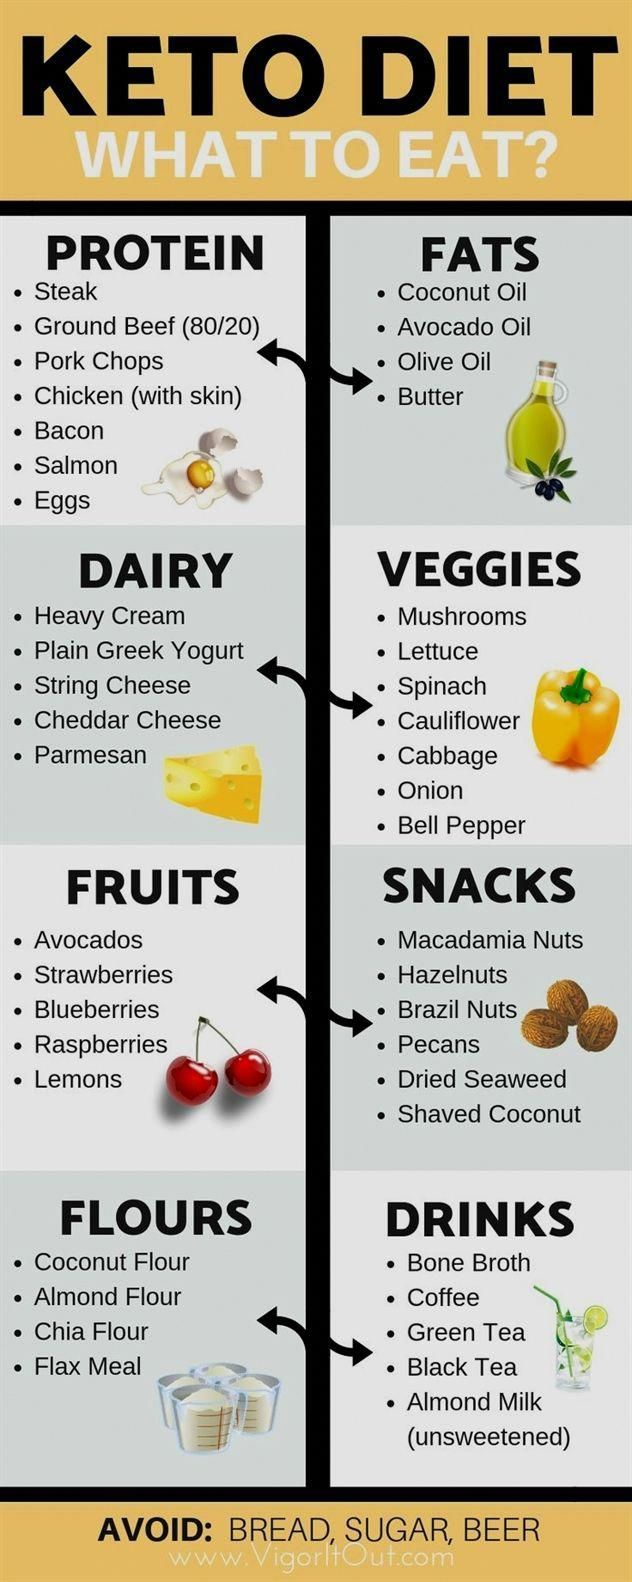 dieting late period, foods for dieting 1200 calories